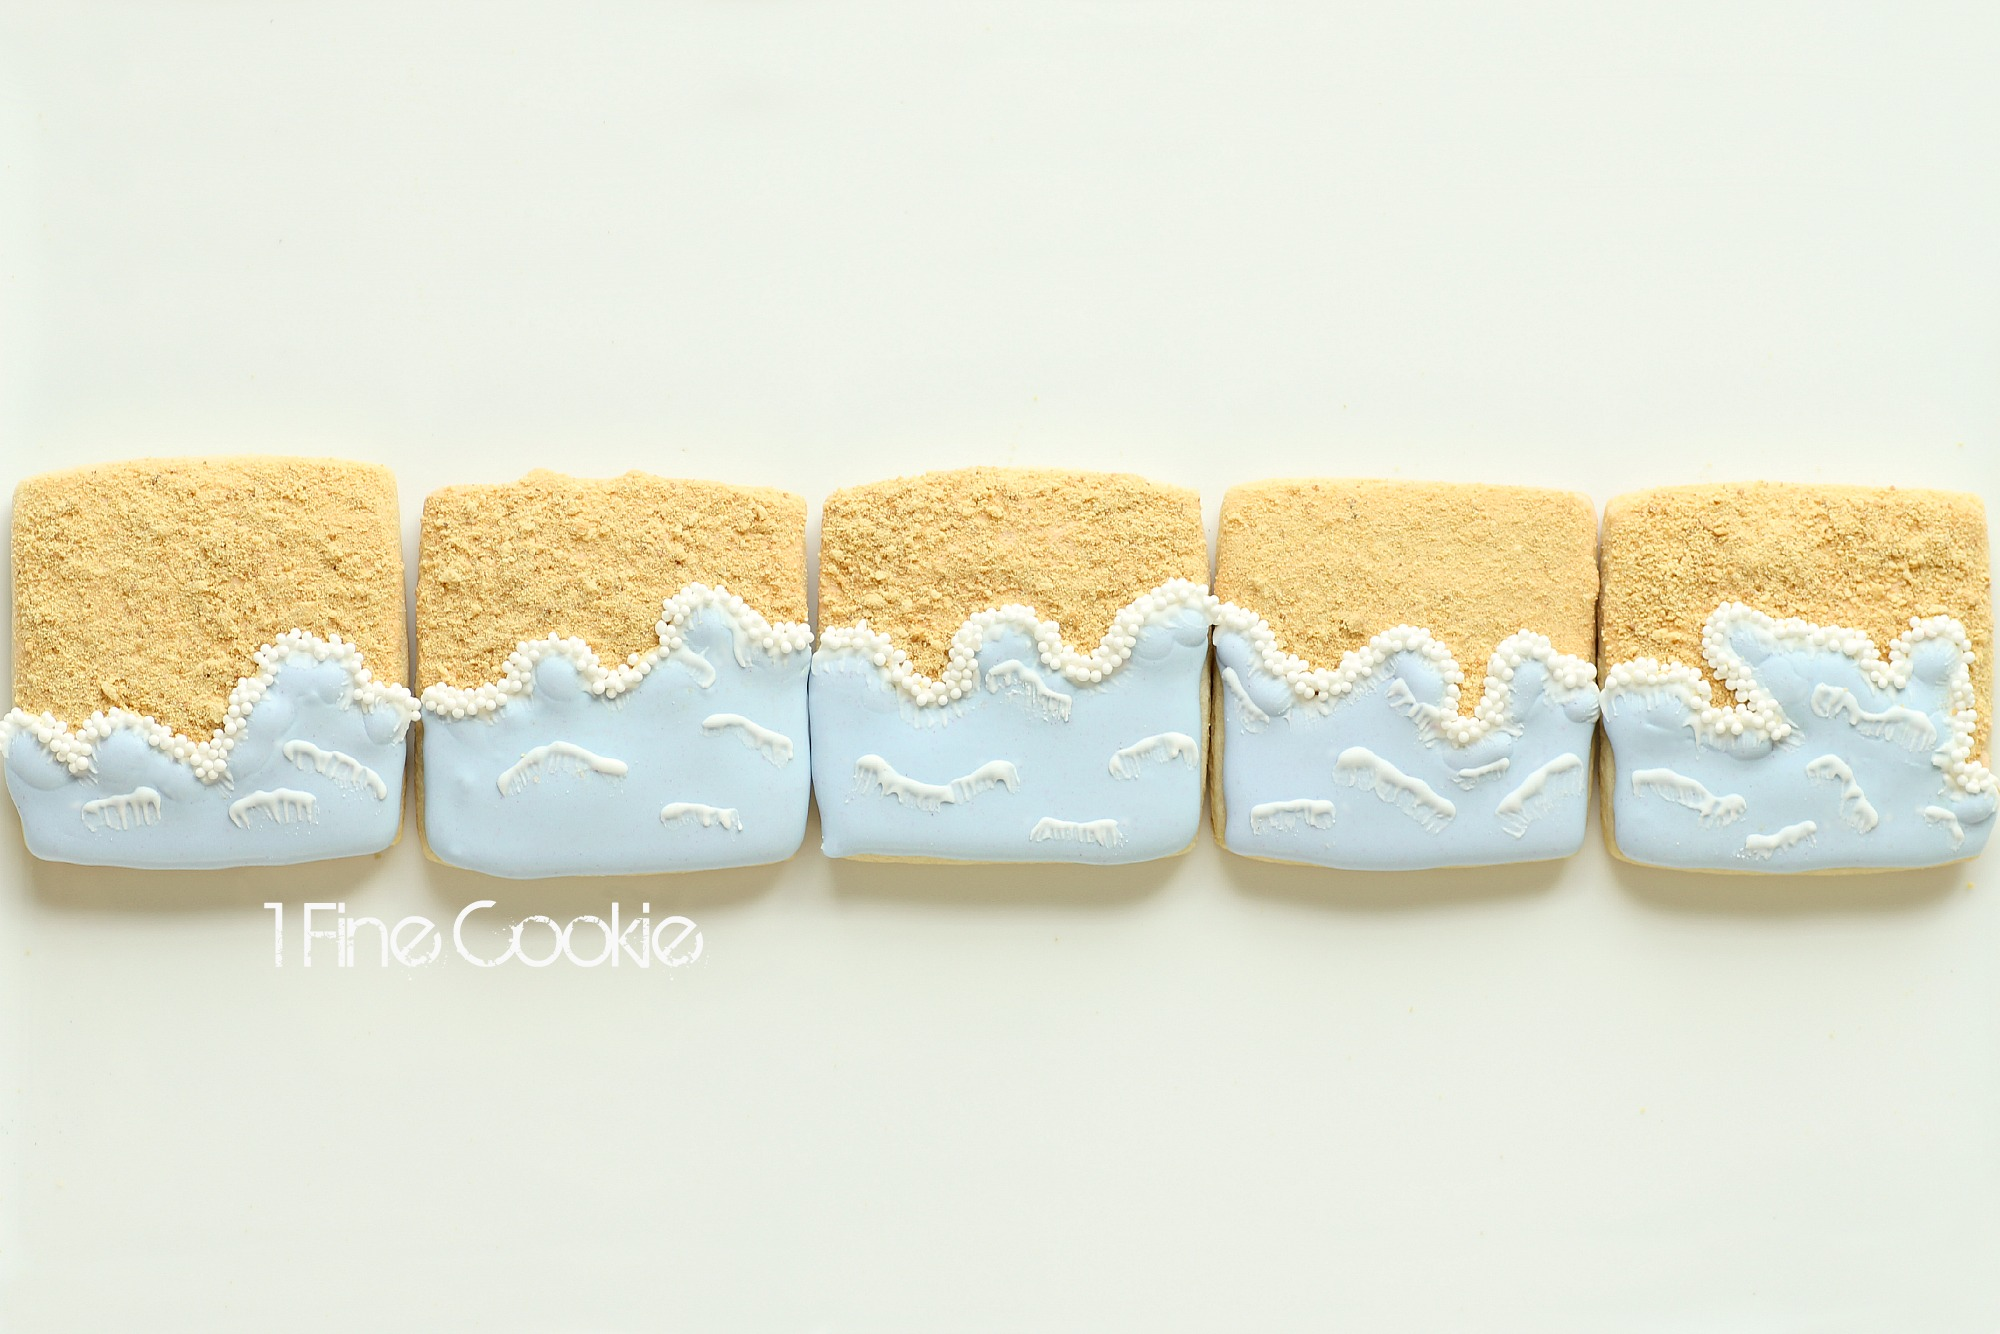 Seashore Sandy Beach Cookies 1 Fine Cookie